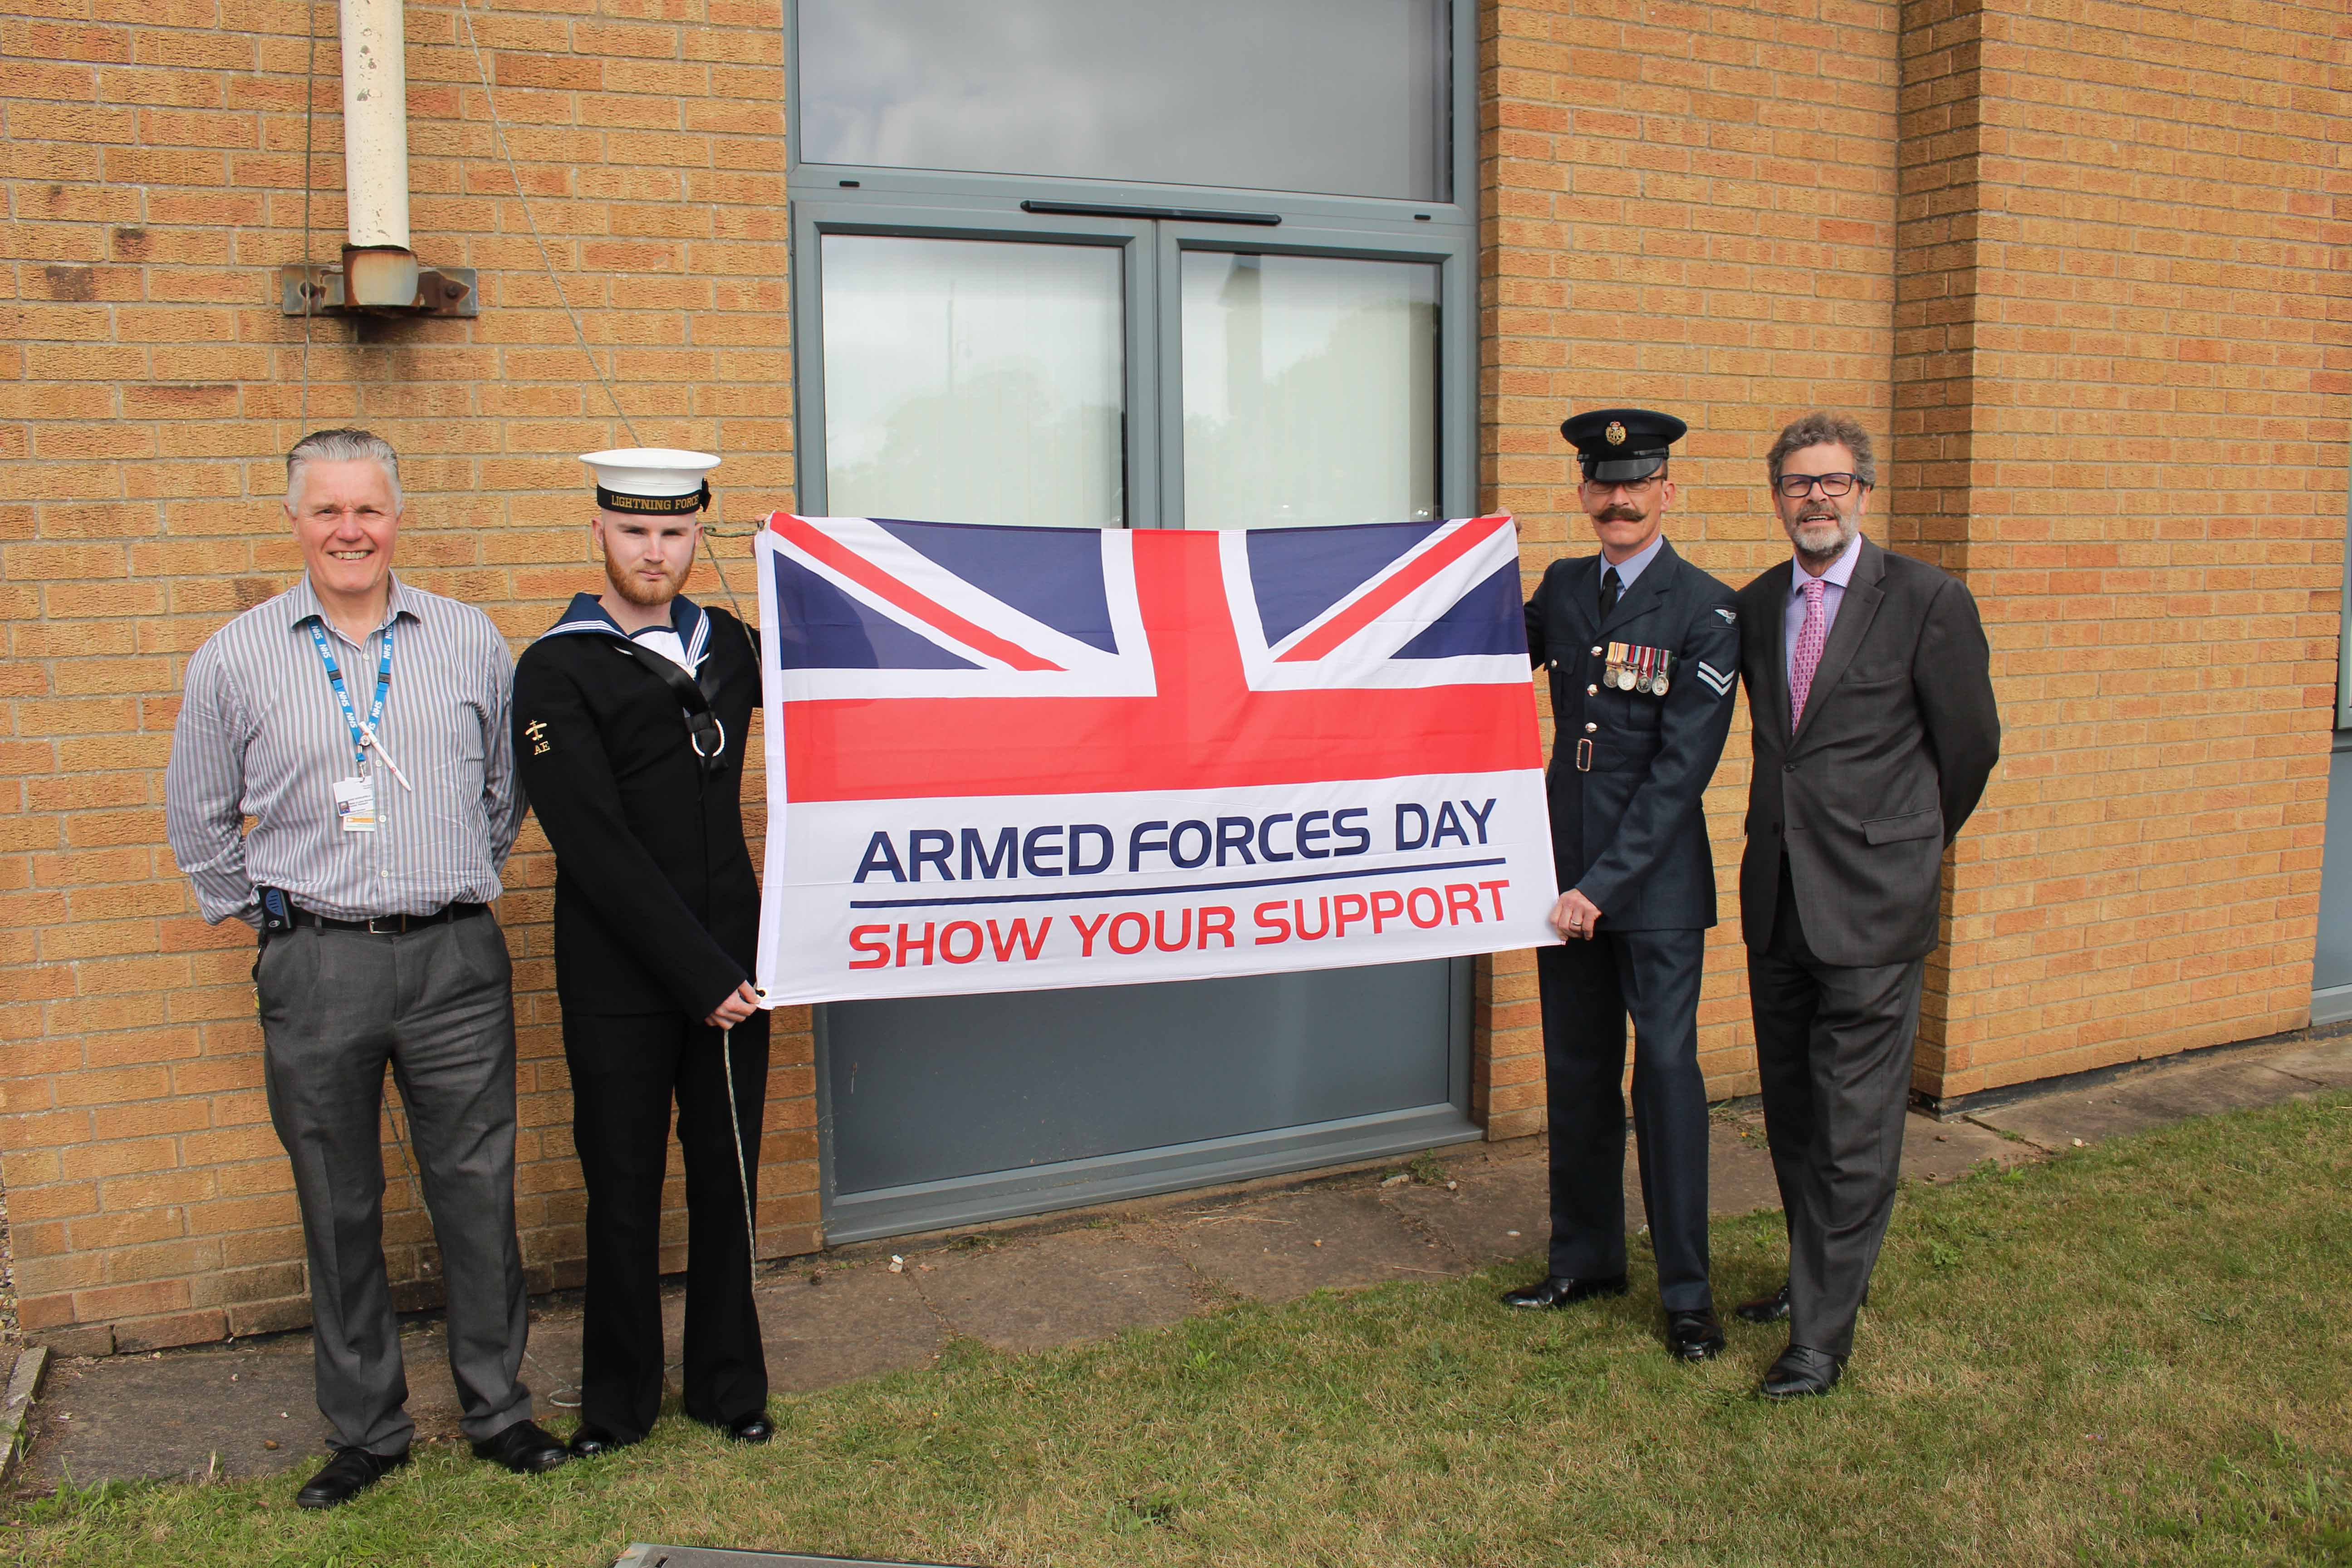 Armed Forces Day photo